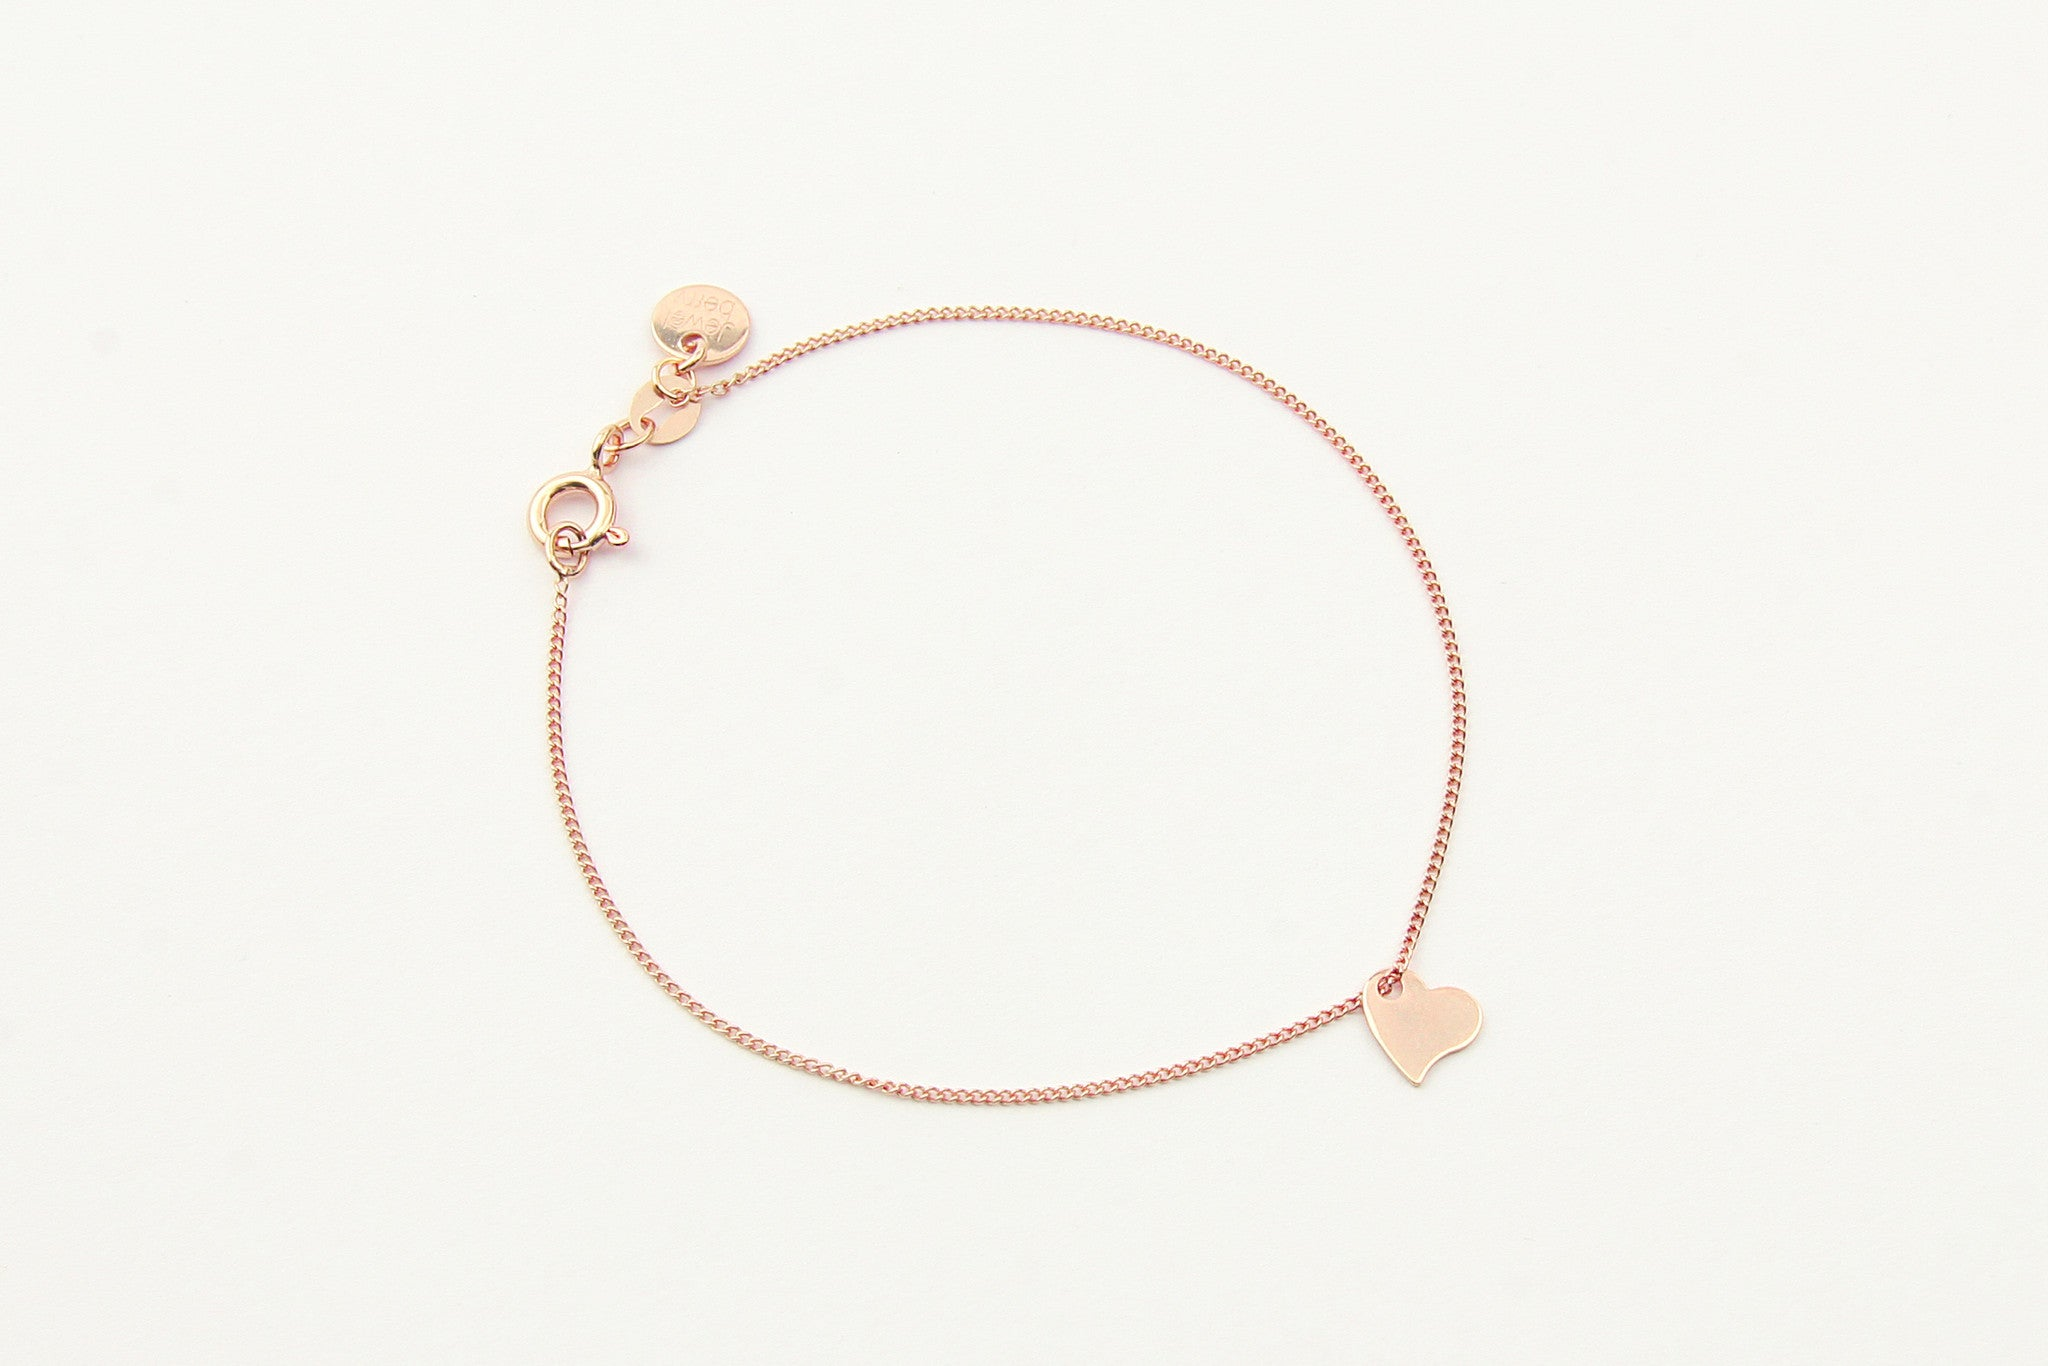 jewelberry armband bracelet my love rose gold plated sterling silver fine jewelry handmade with love fairtrade curb chain